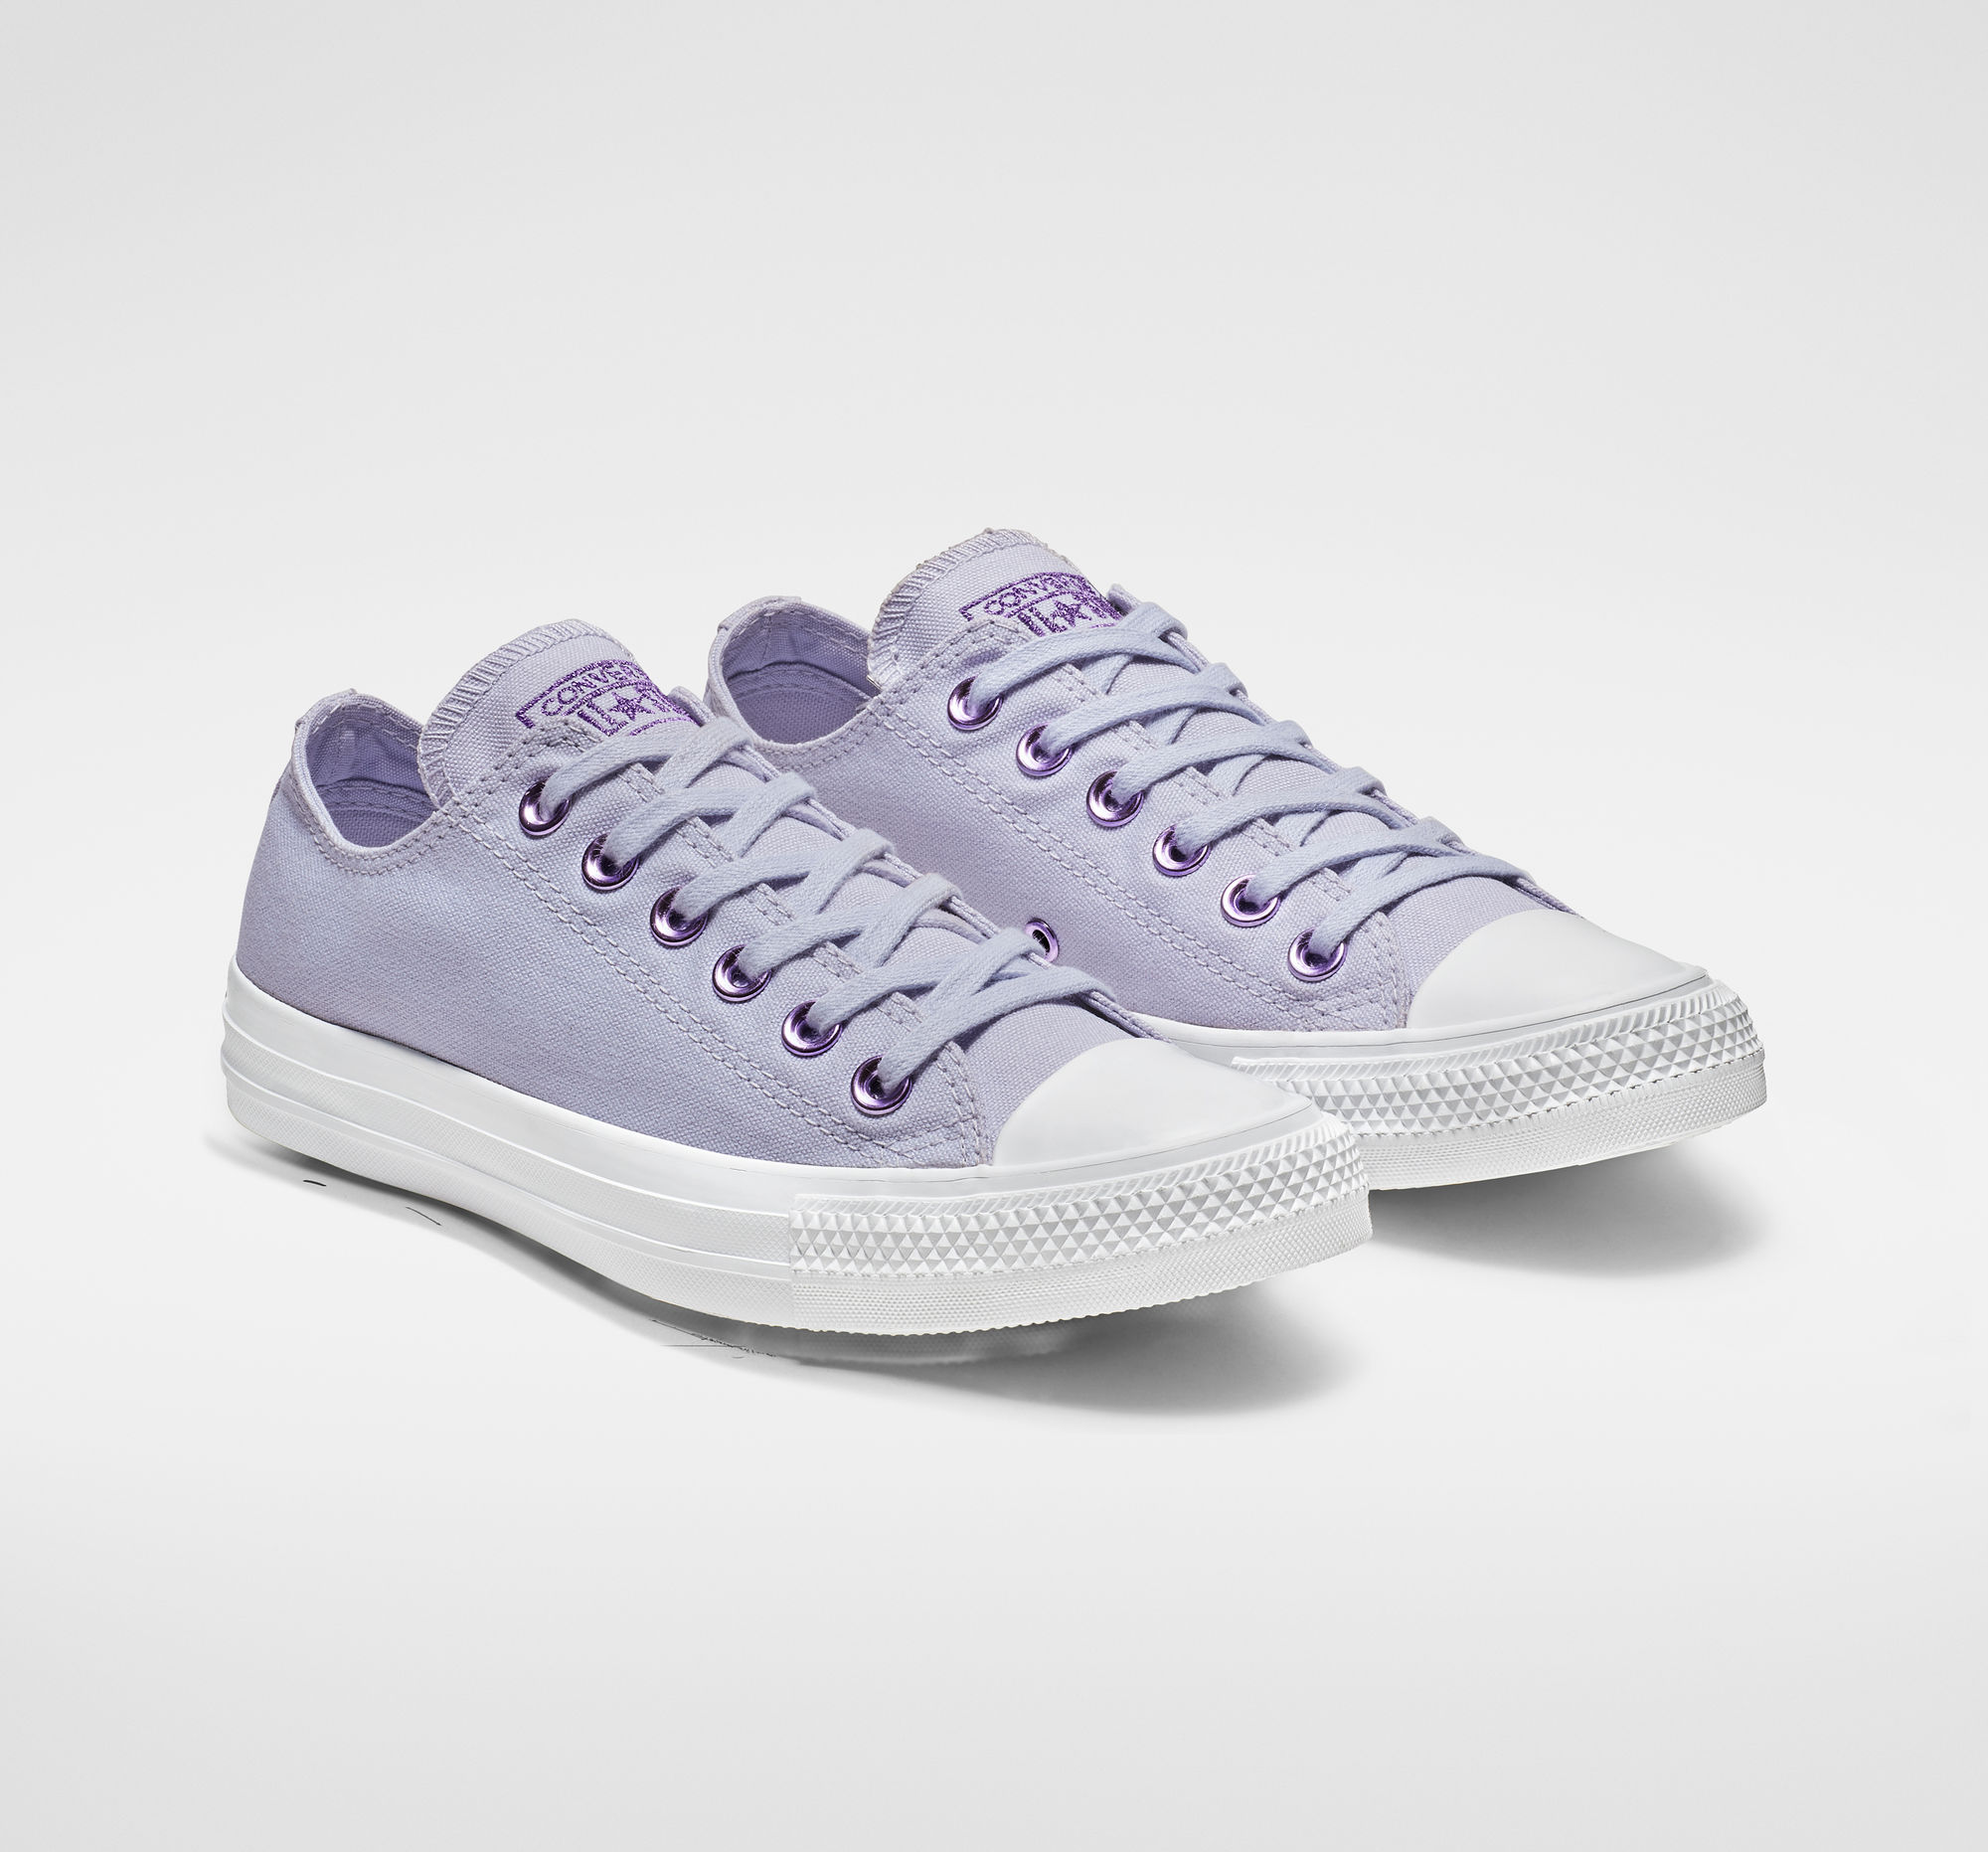 Chuck Taylor All Stars Hearts Low Top in Oxygen Purple/Washed Lilac